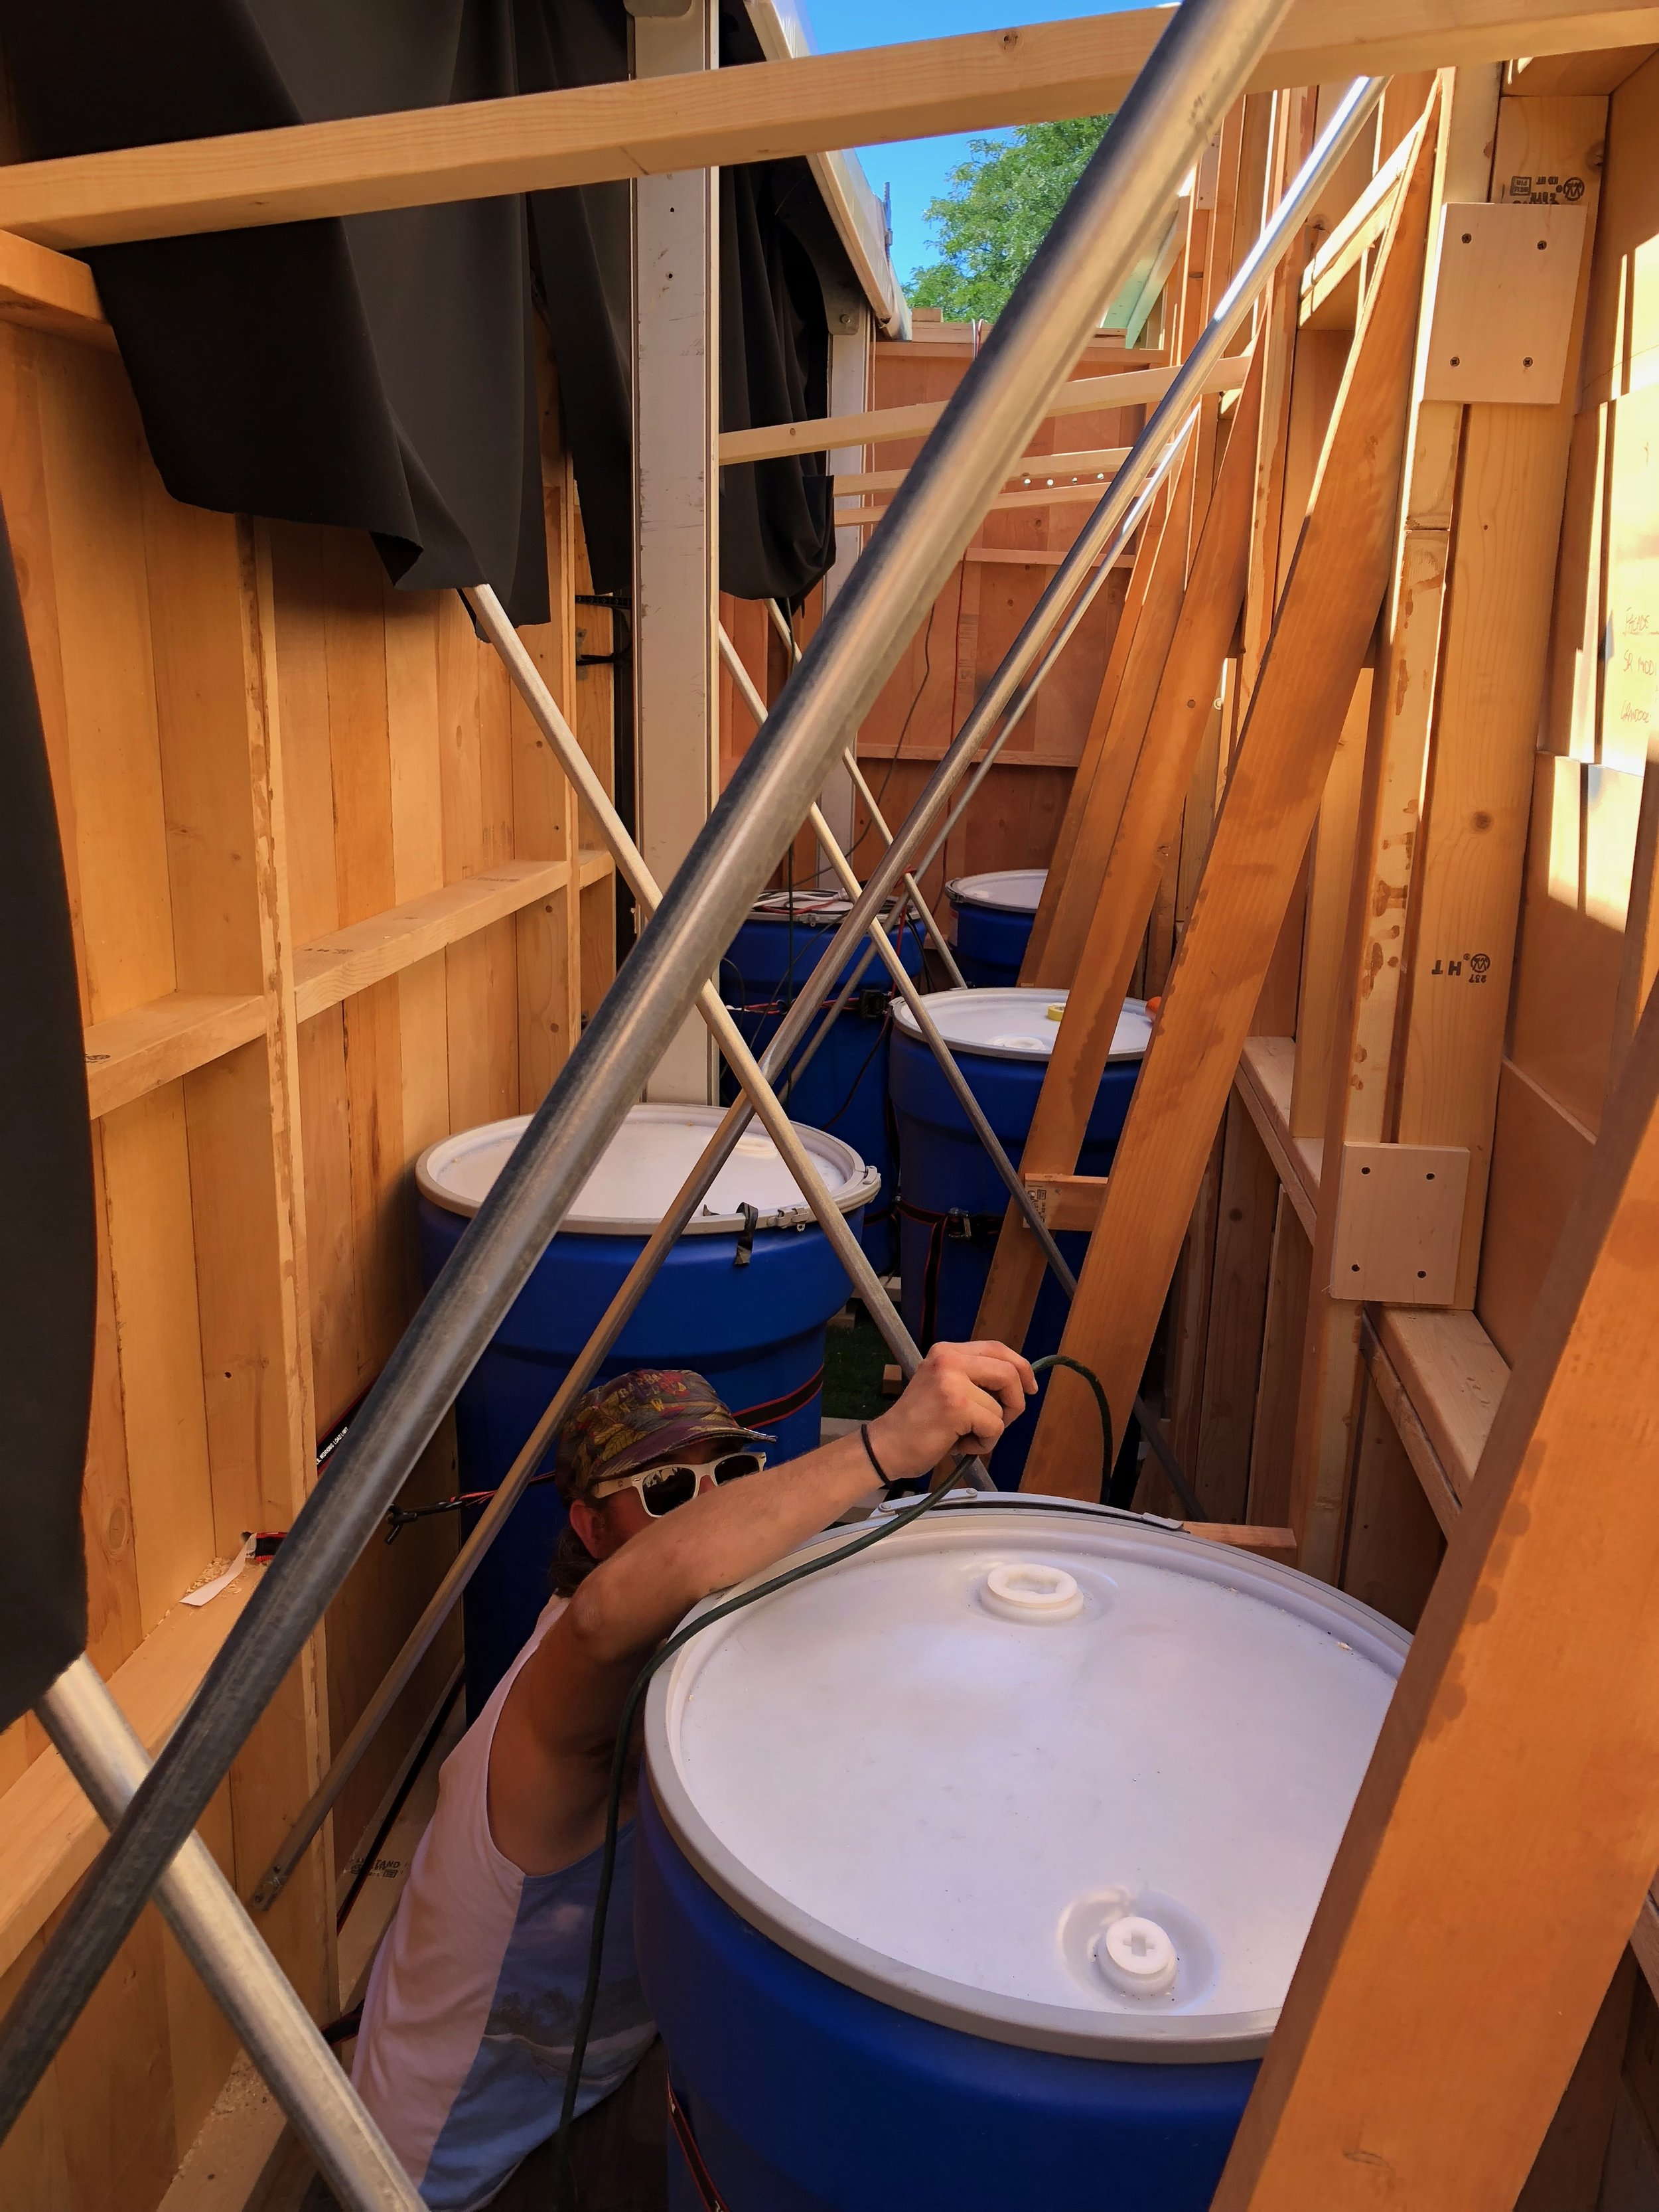 Making the magic safe: water ballasts and cross bracing.